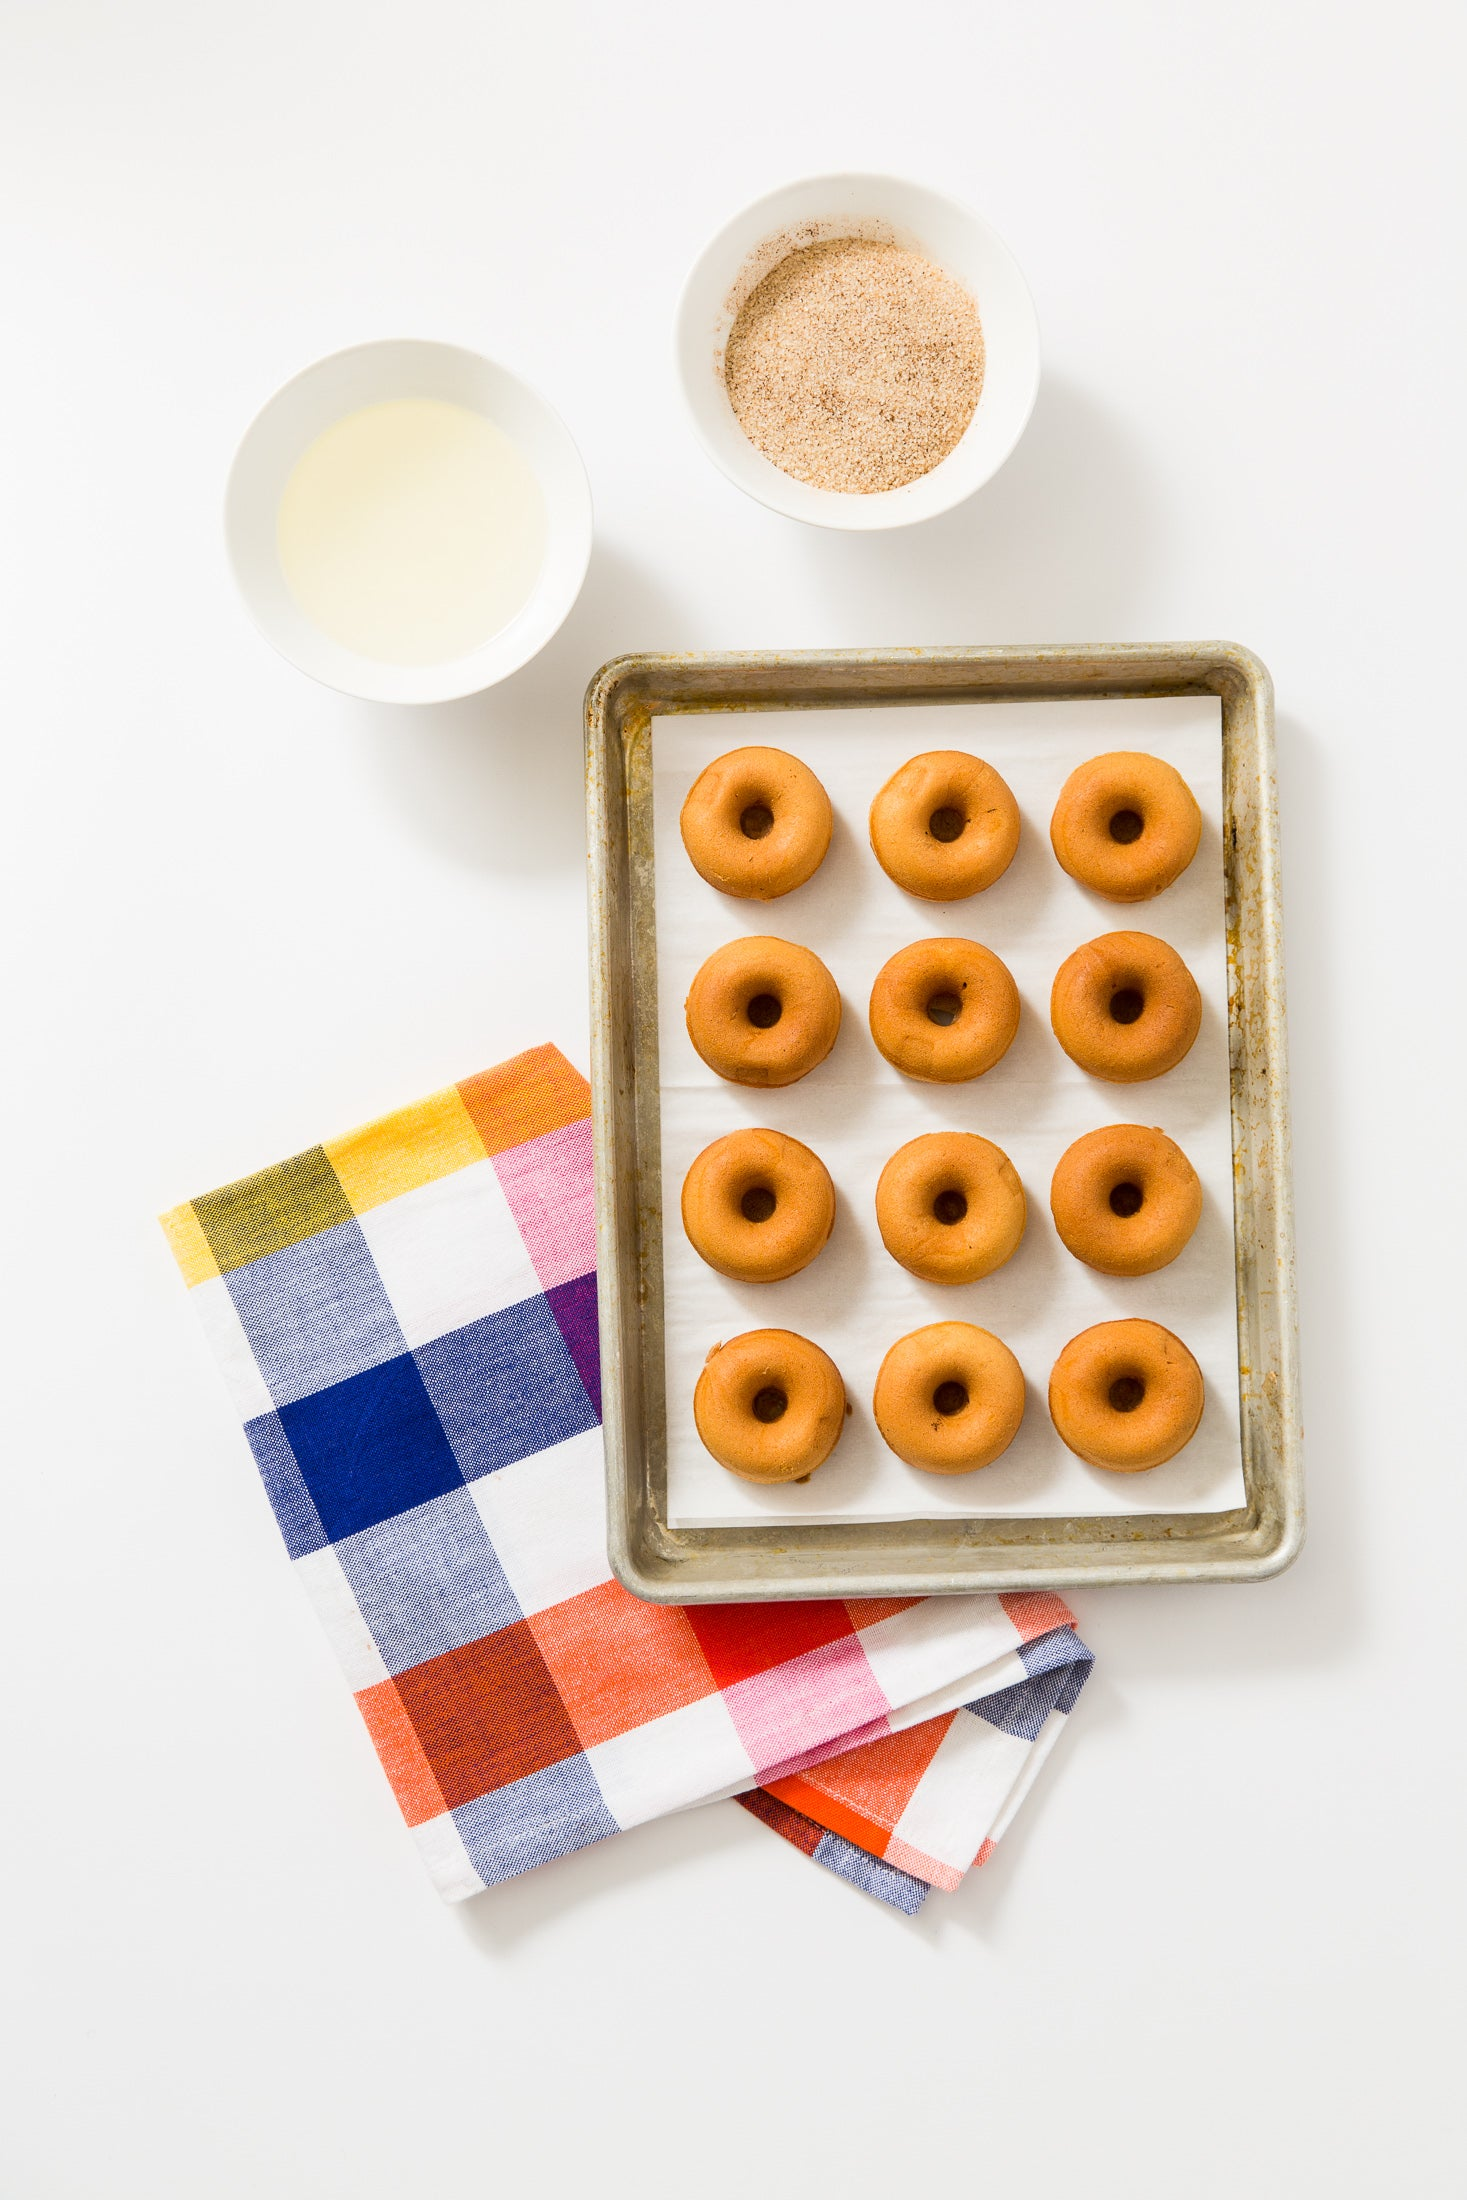 Image of twelve Miss Jones Baking Co Dirty Chai Mini Donuts on a baking sheet next to a bowl of milk and a bowl of cinnamon sugar